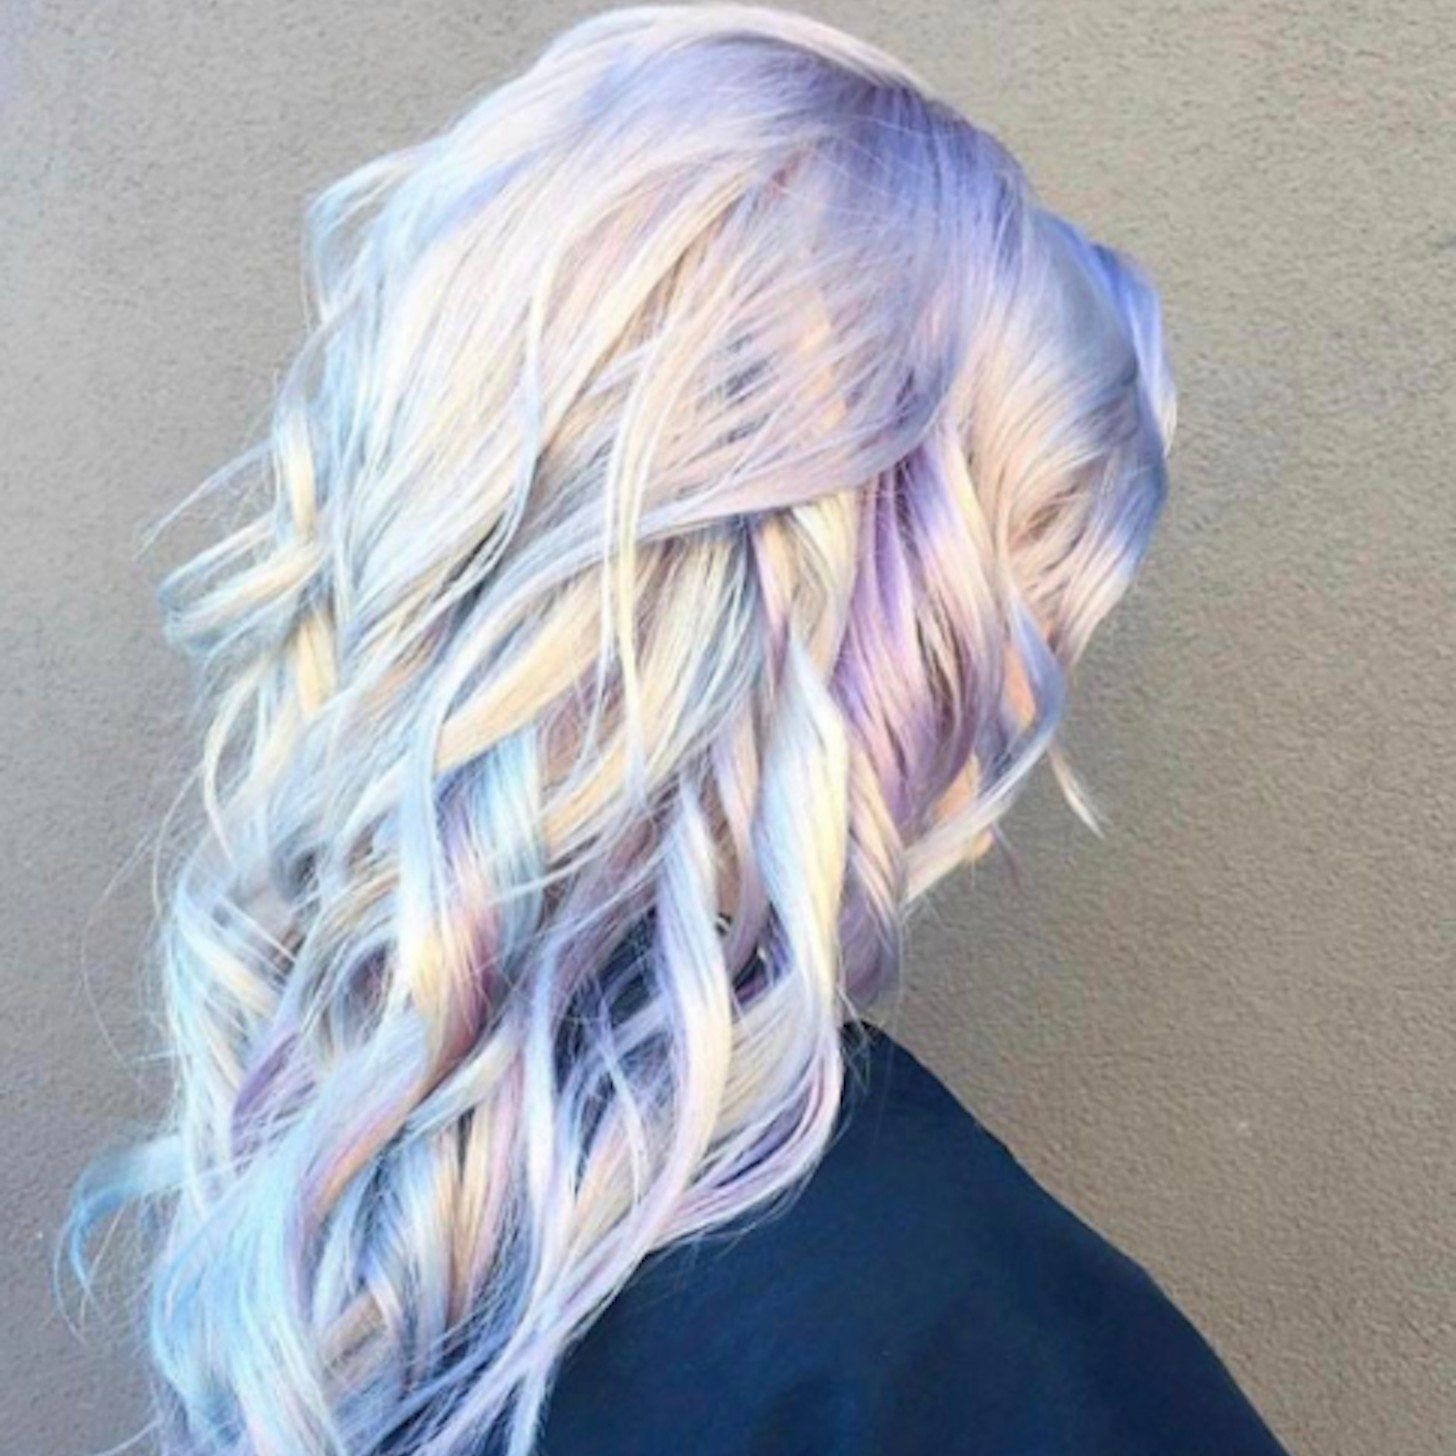 Holographic Hair Is The Fairidescent Dye Trend Weve Been Waiting